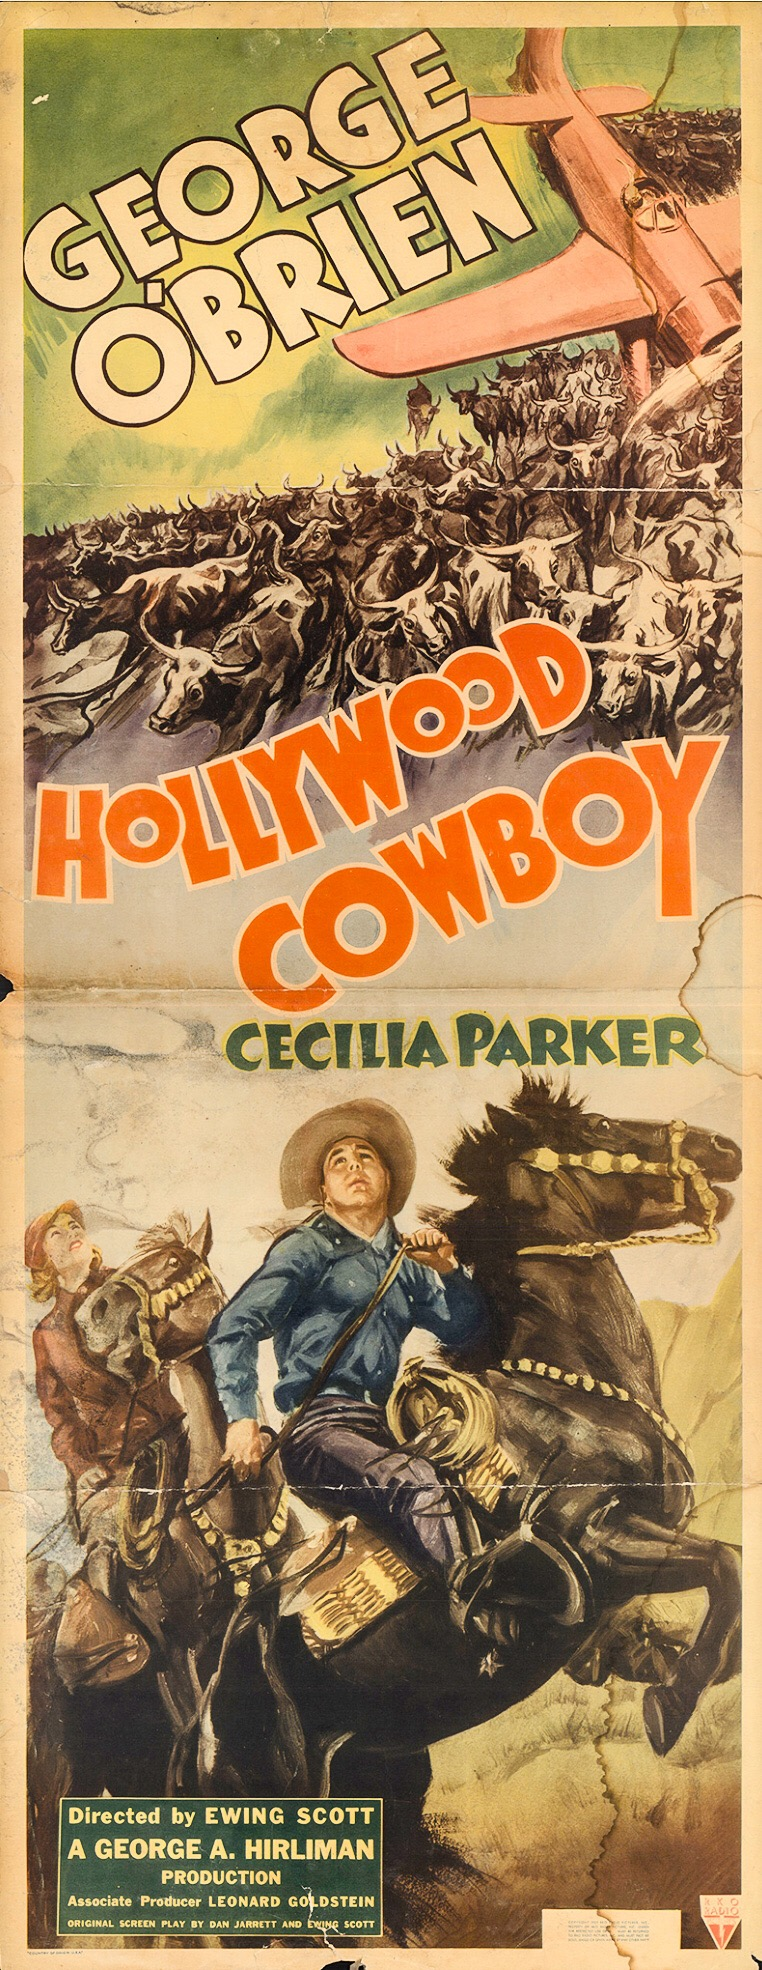 George O'Brien and Cecilia Parker in Hollywood Cowboy (1937)